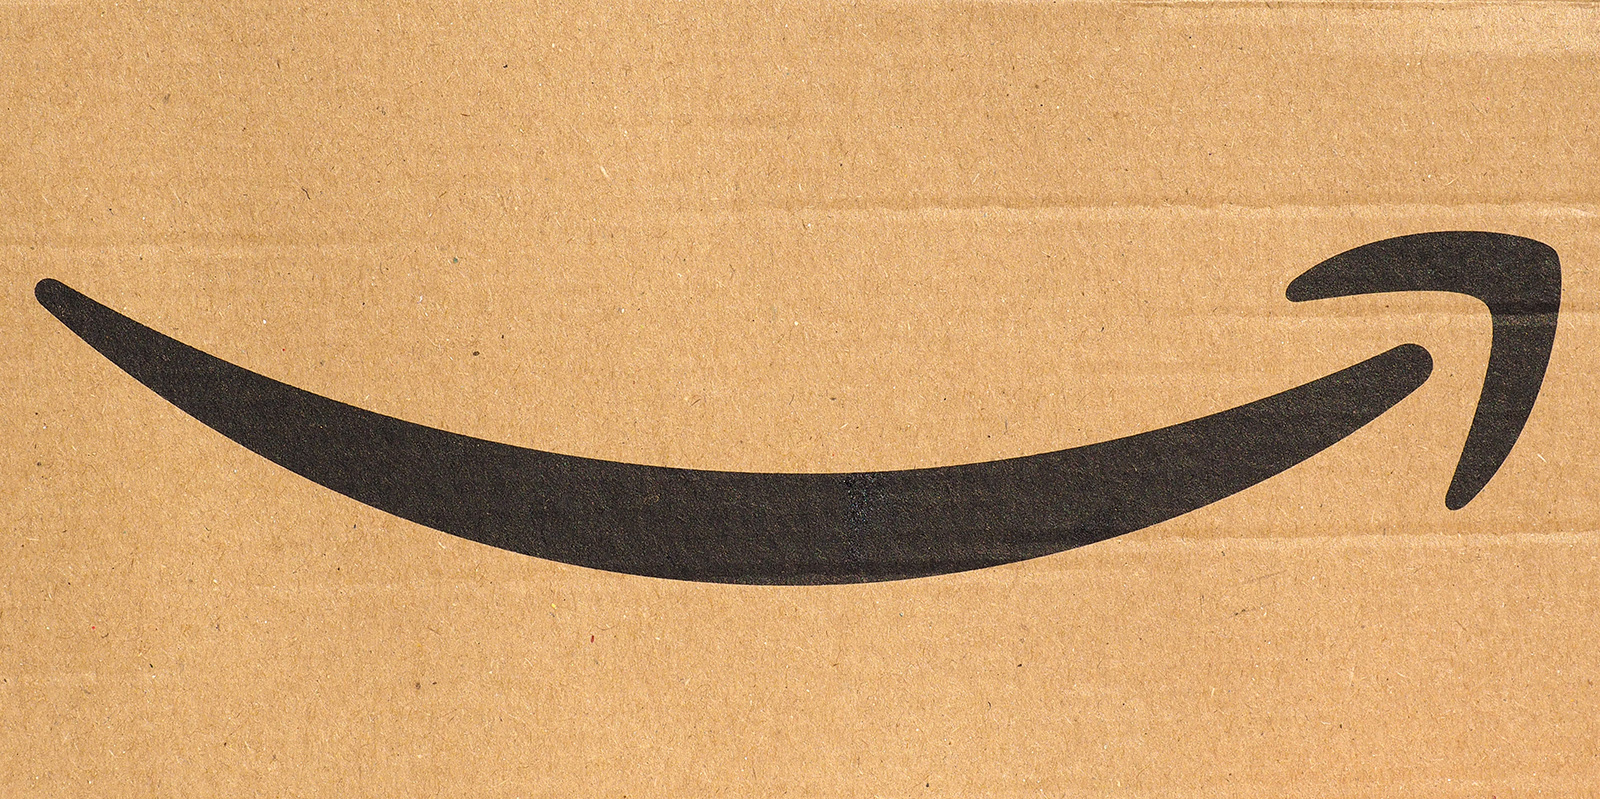 Amazon wants to give you $15 and you'd have to be nuts to pass it up